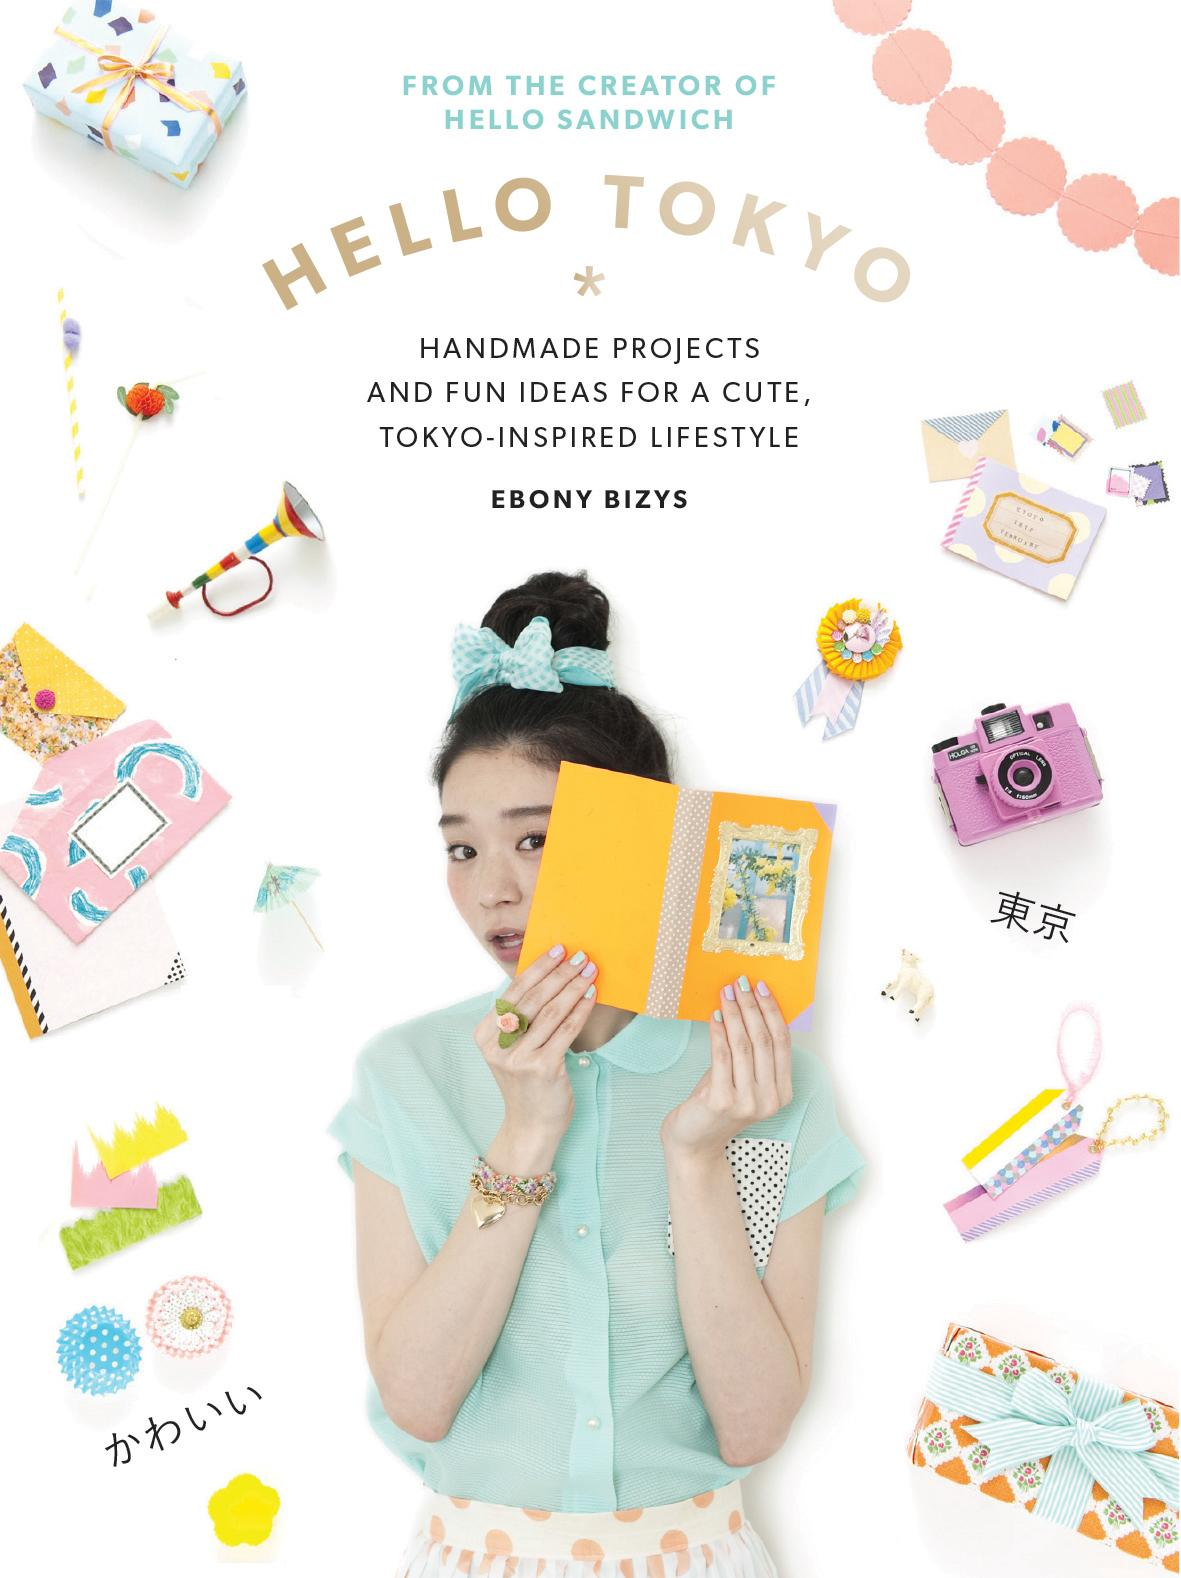 Hello Tokyo: Handmade Projects and Fun Ideas for a Cute, Tokyo-Inspired Lifestyle